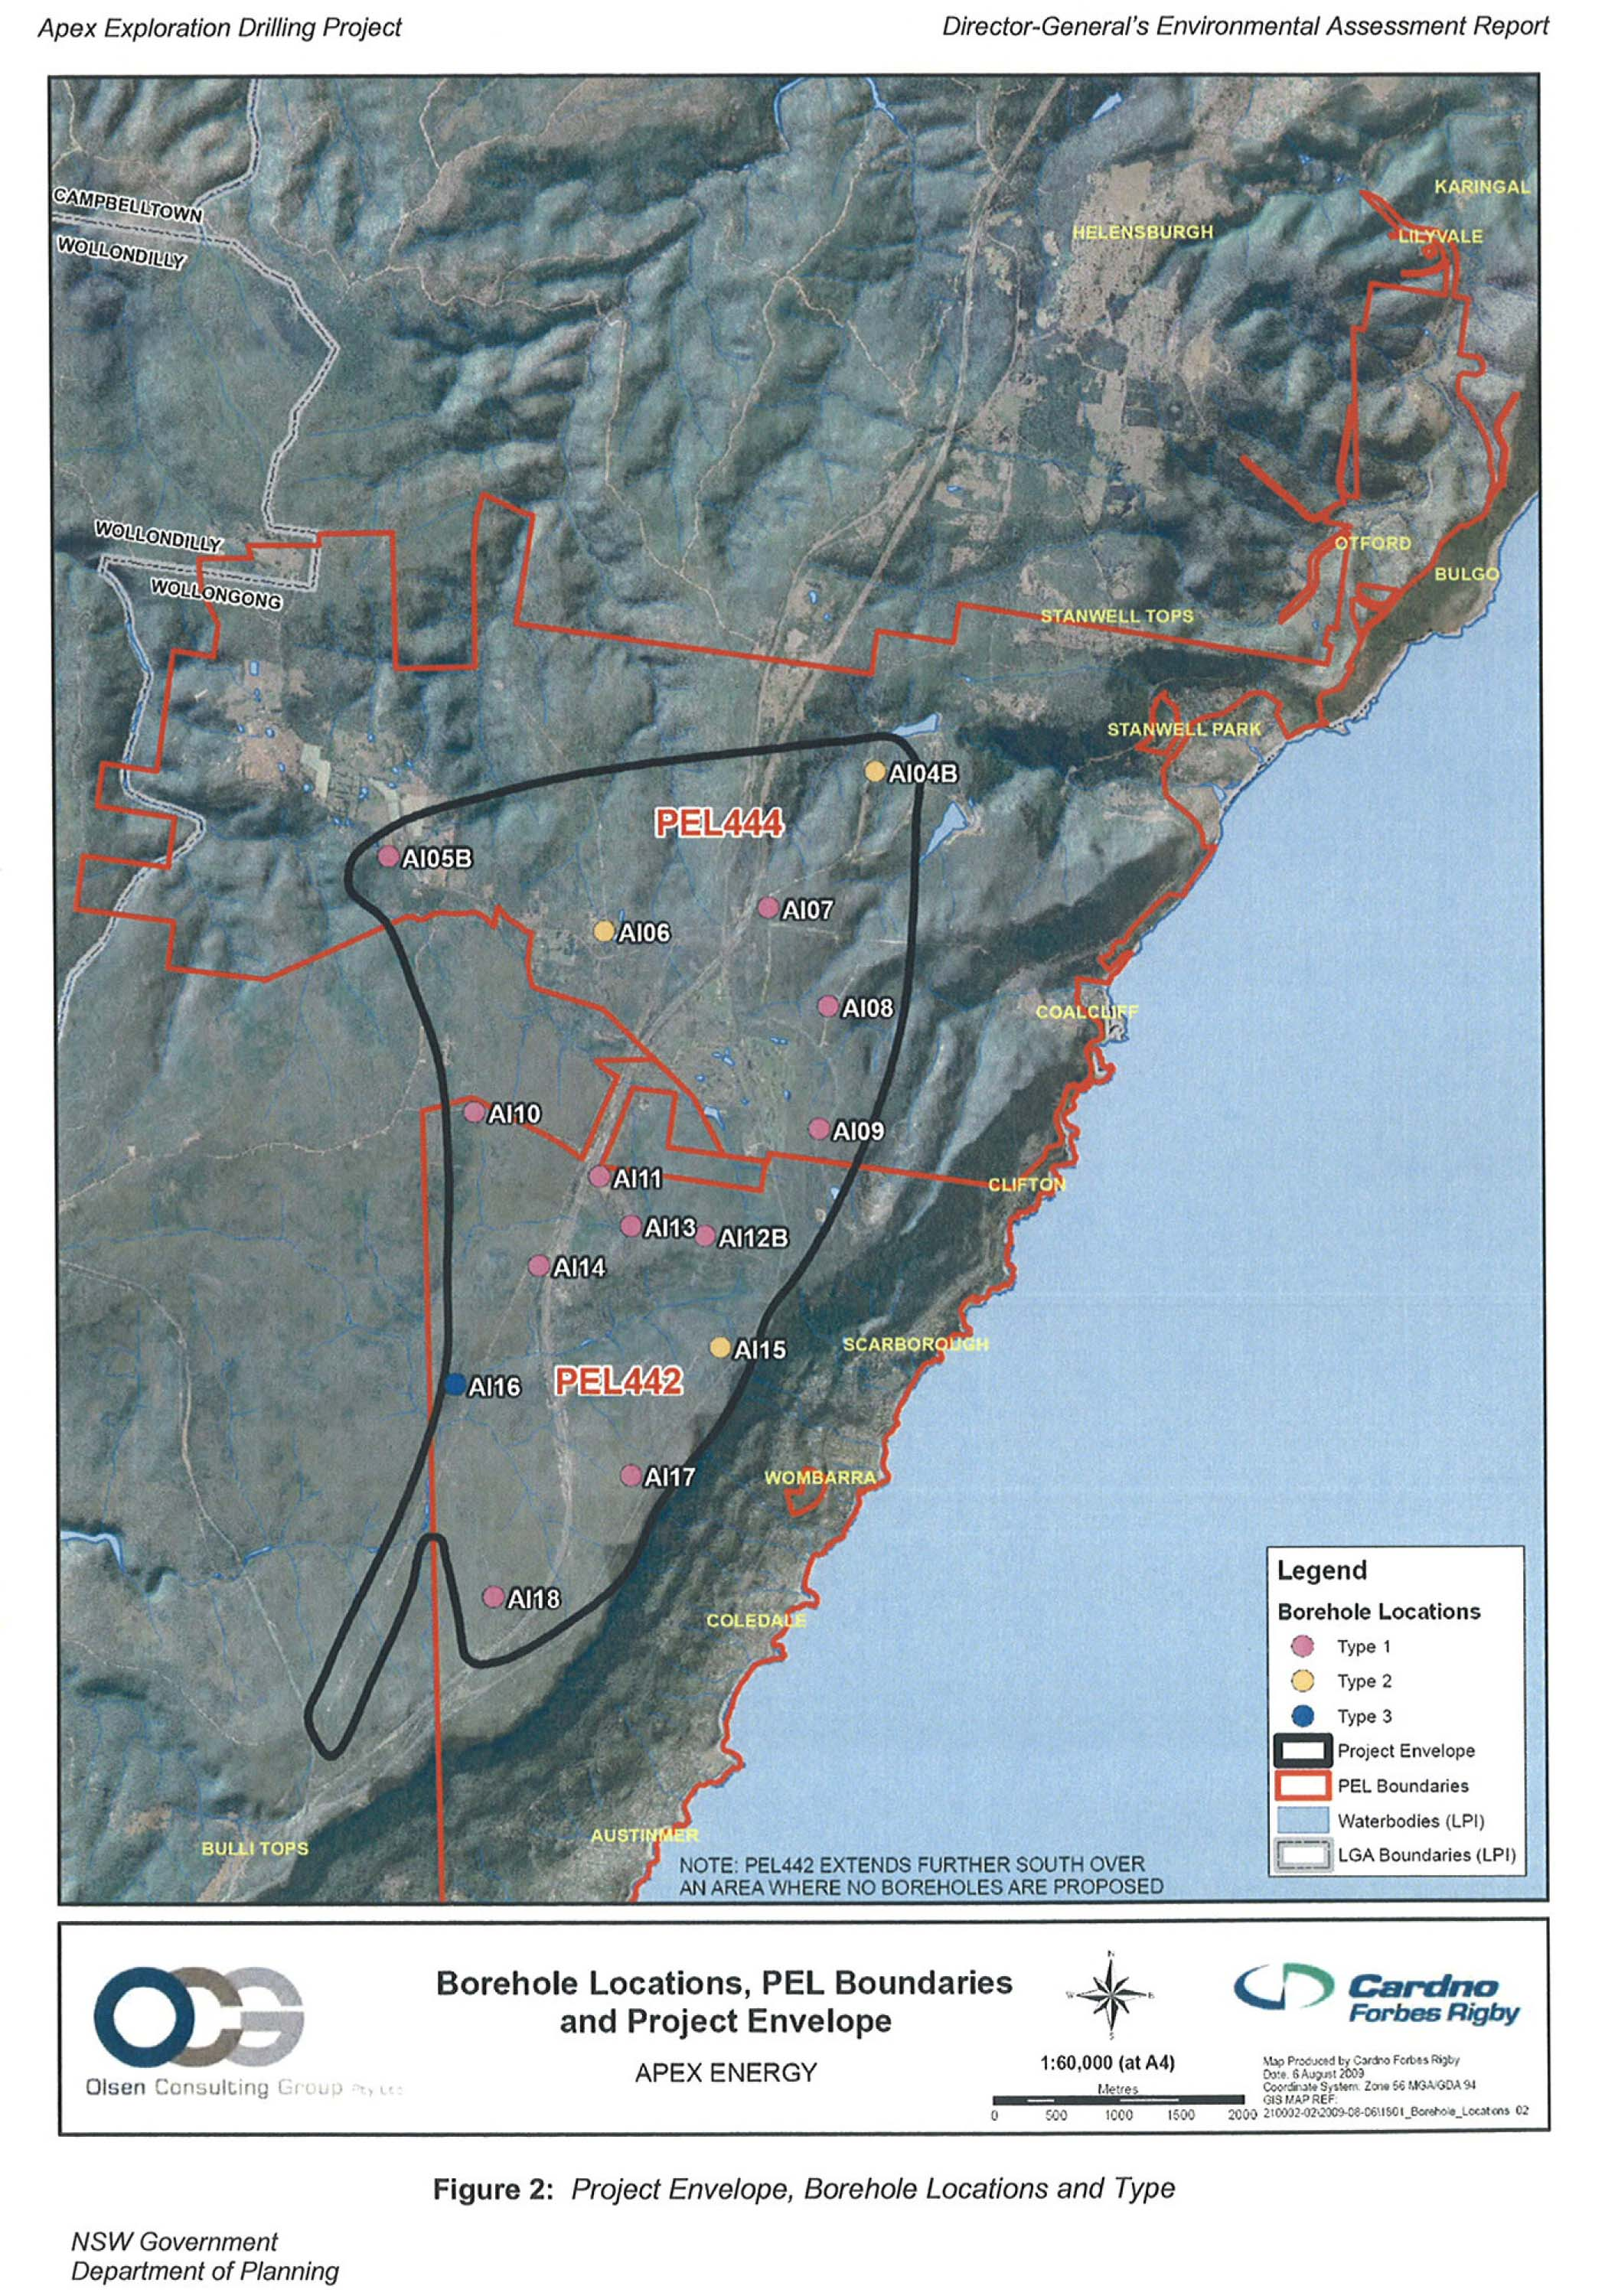 Does any one know of any good websites on coal seam gas mining?